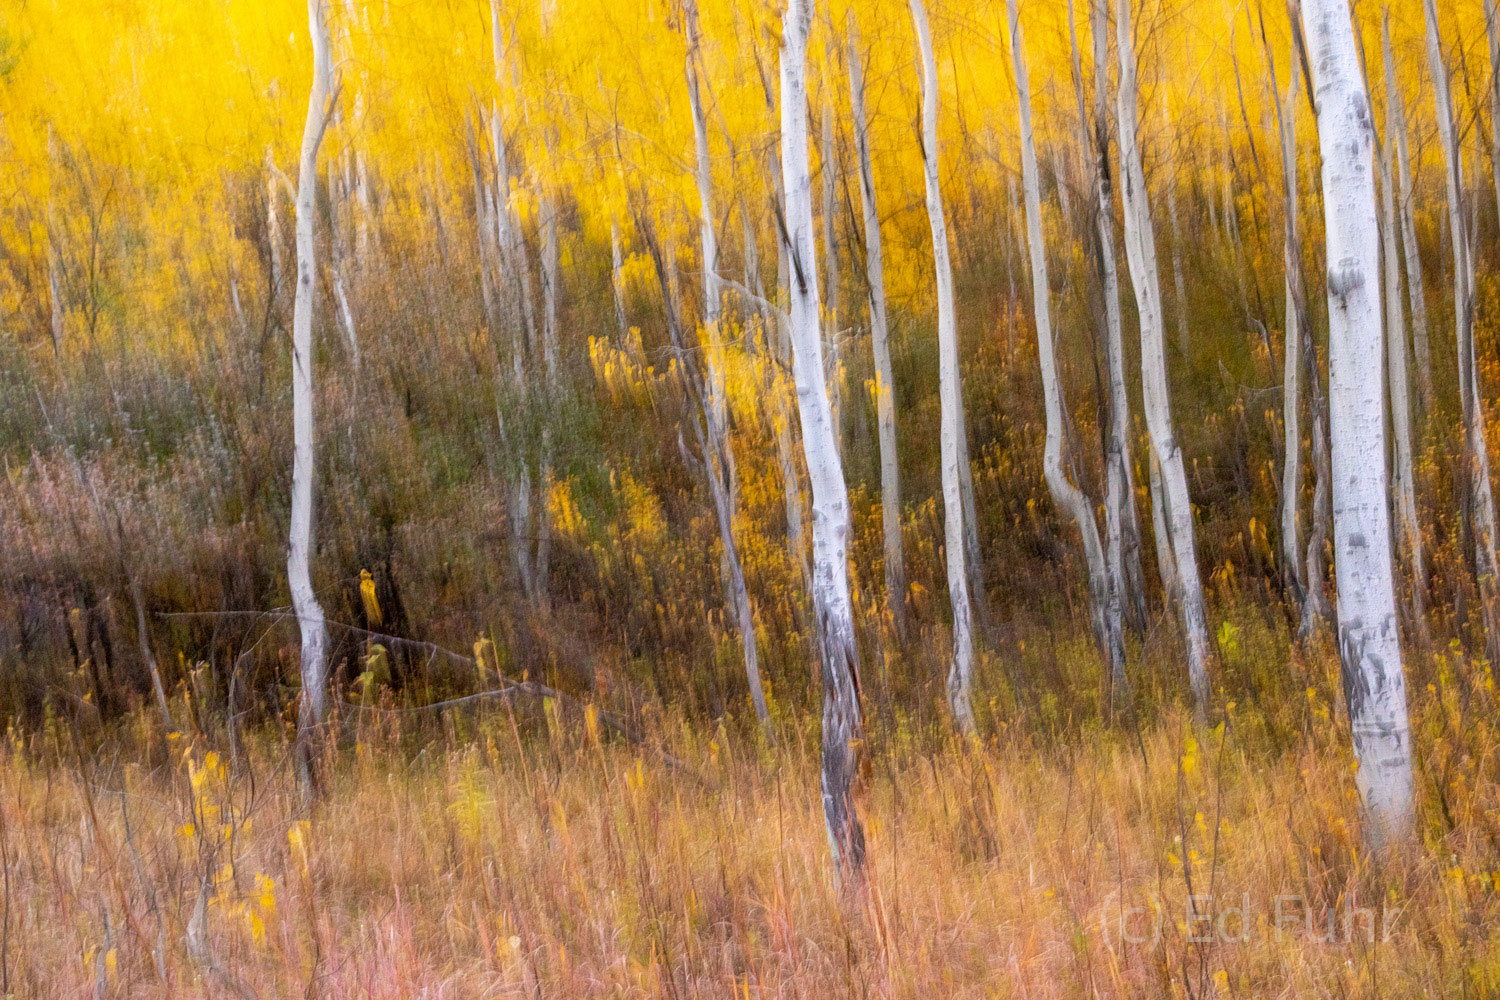 Abstracts and Patterns, autumn, fall, foliage, aspen, pattern, yellow, grand teton, tetons, photograph, photo